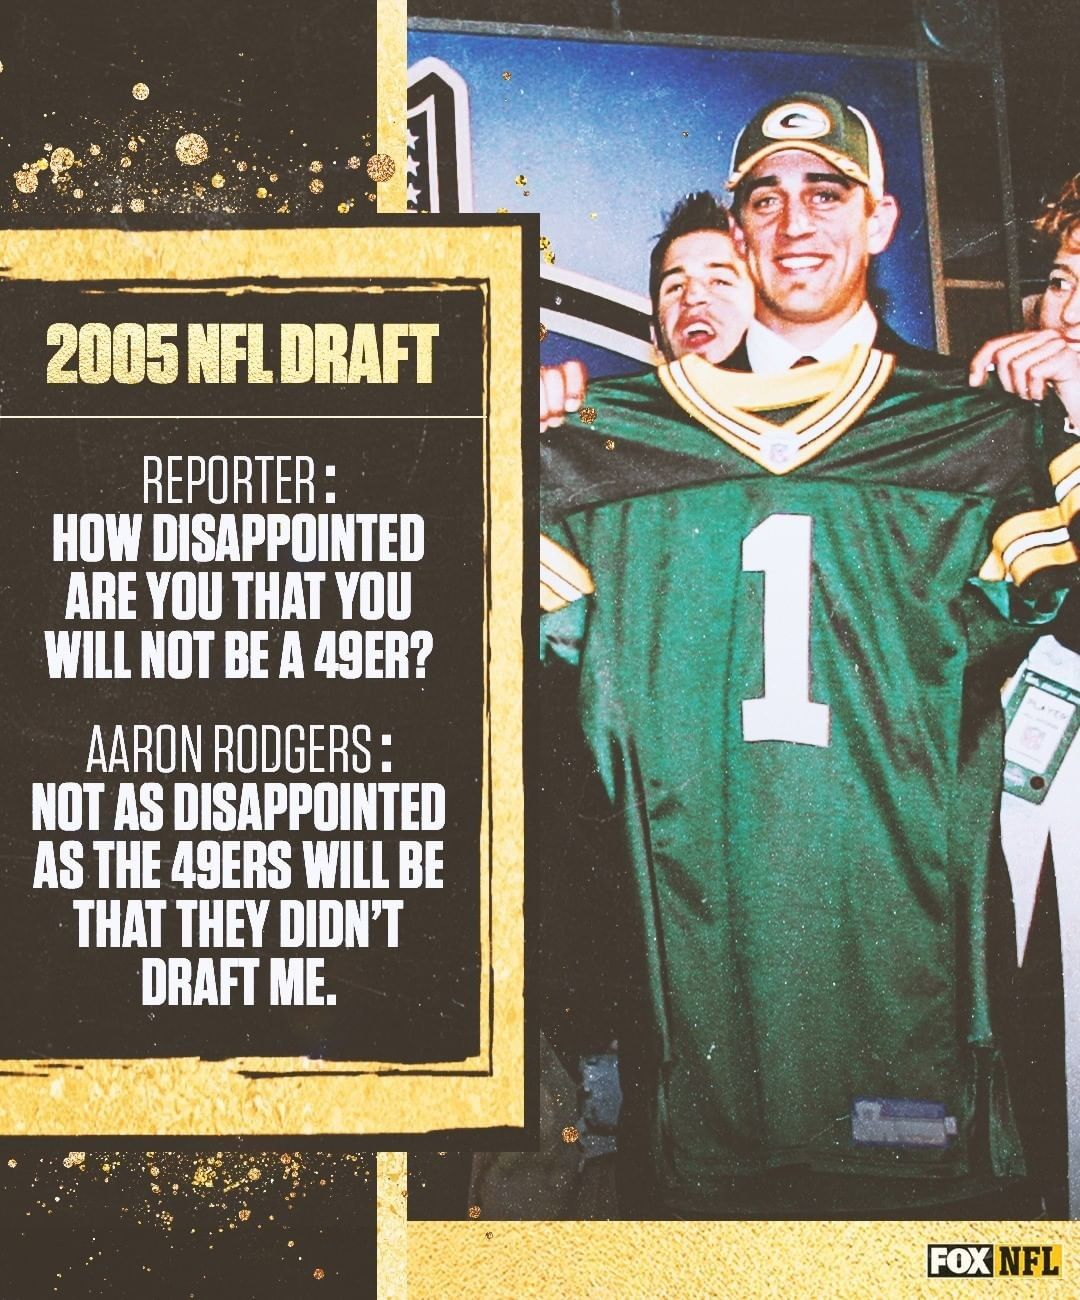 Pin By Joe Cool On 0 Daily In 2020 Nfl Draft Aaron Rodgers Baseball Cards